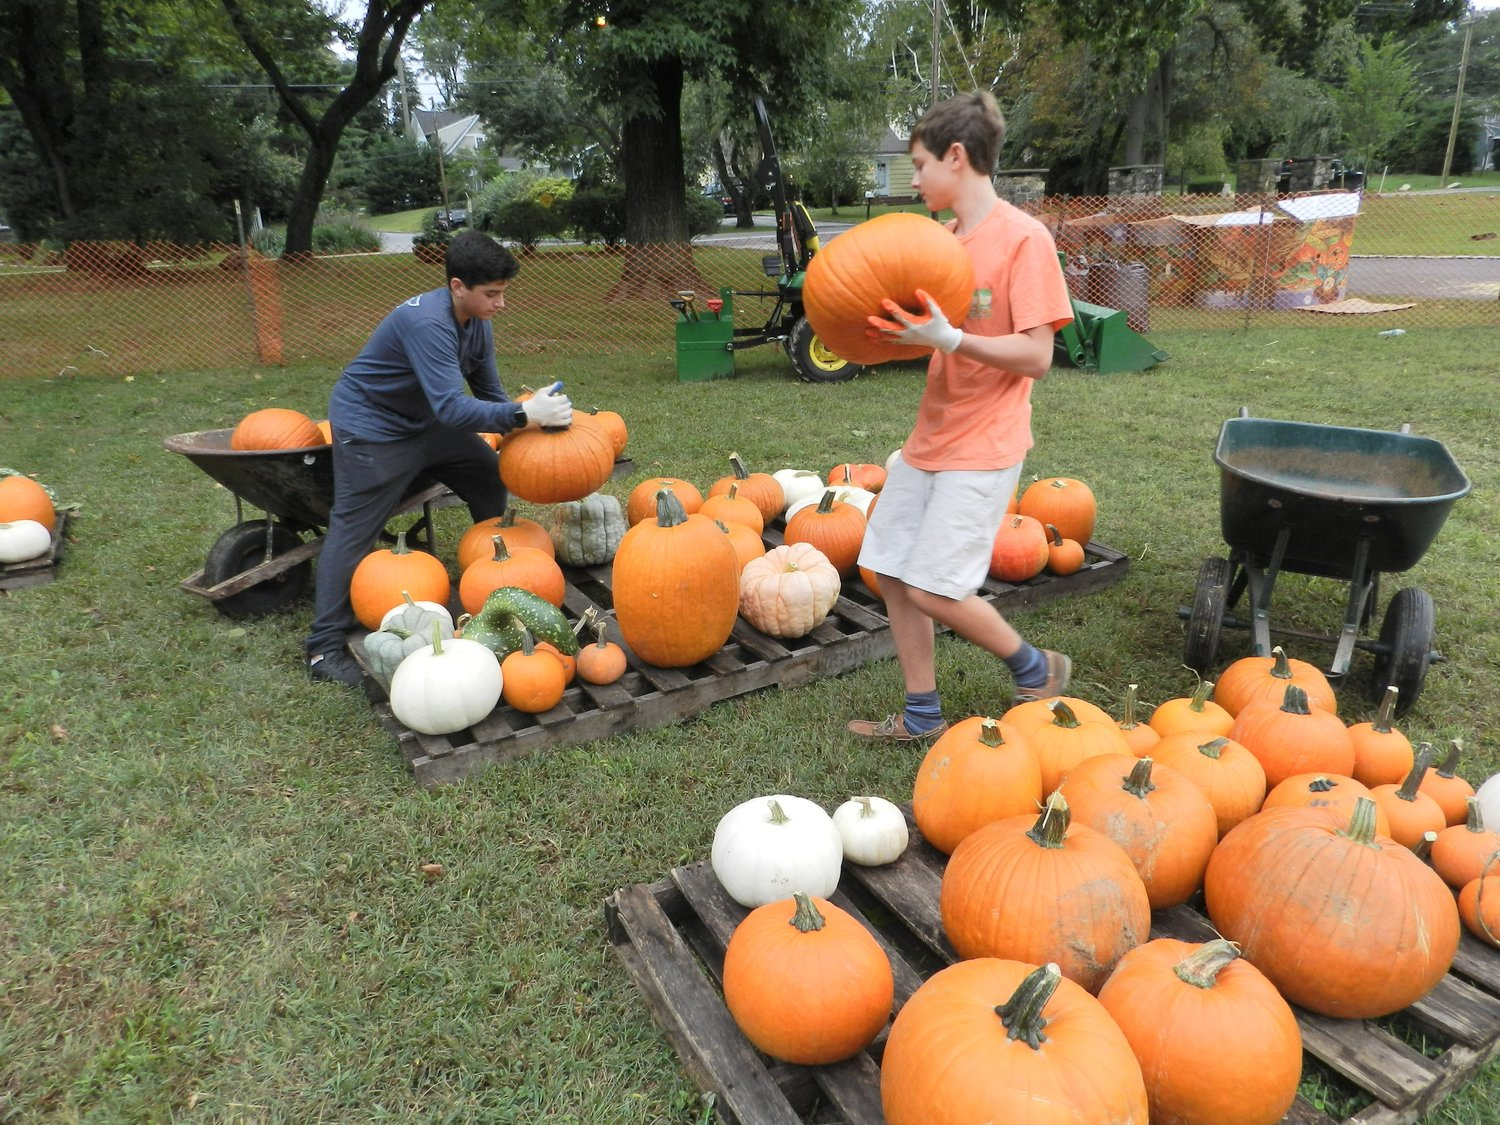 North Shore High School students Giacomo D'Alessandro, left, and Atticus Bartlett unloaded a plethora of pumpkins from wheelbarrows.